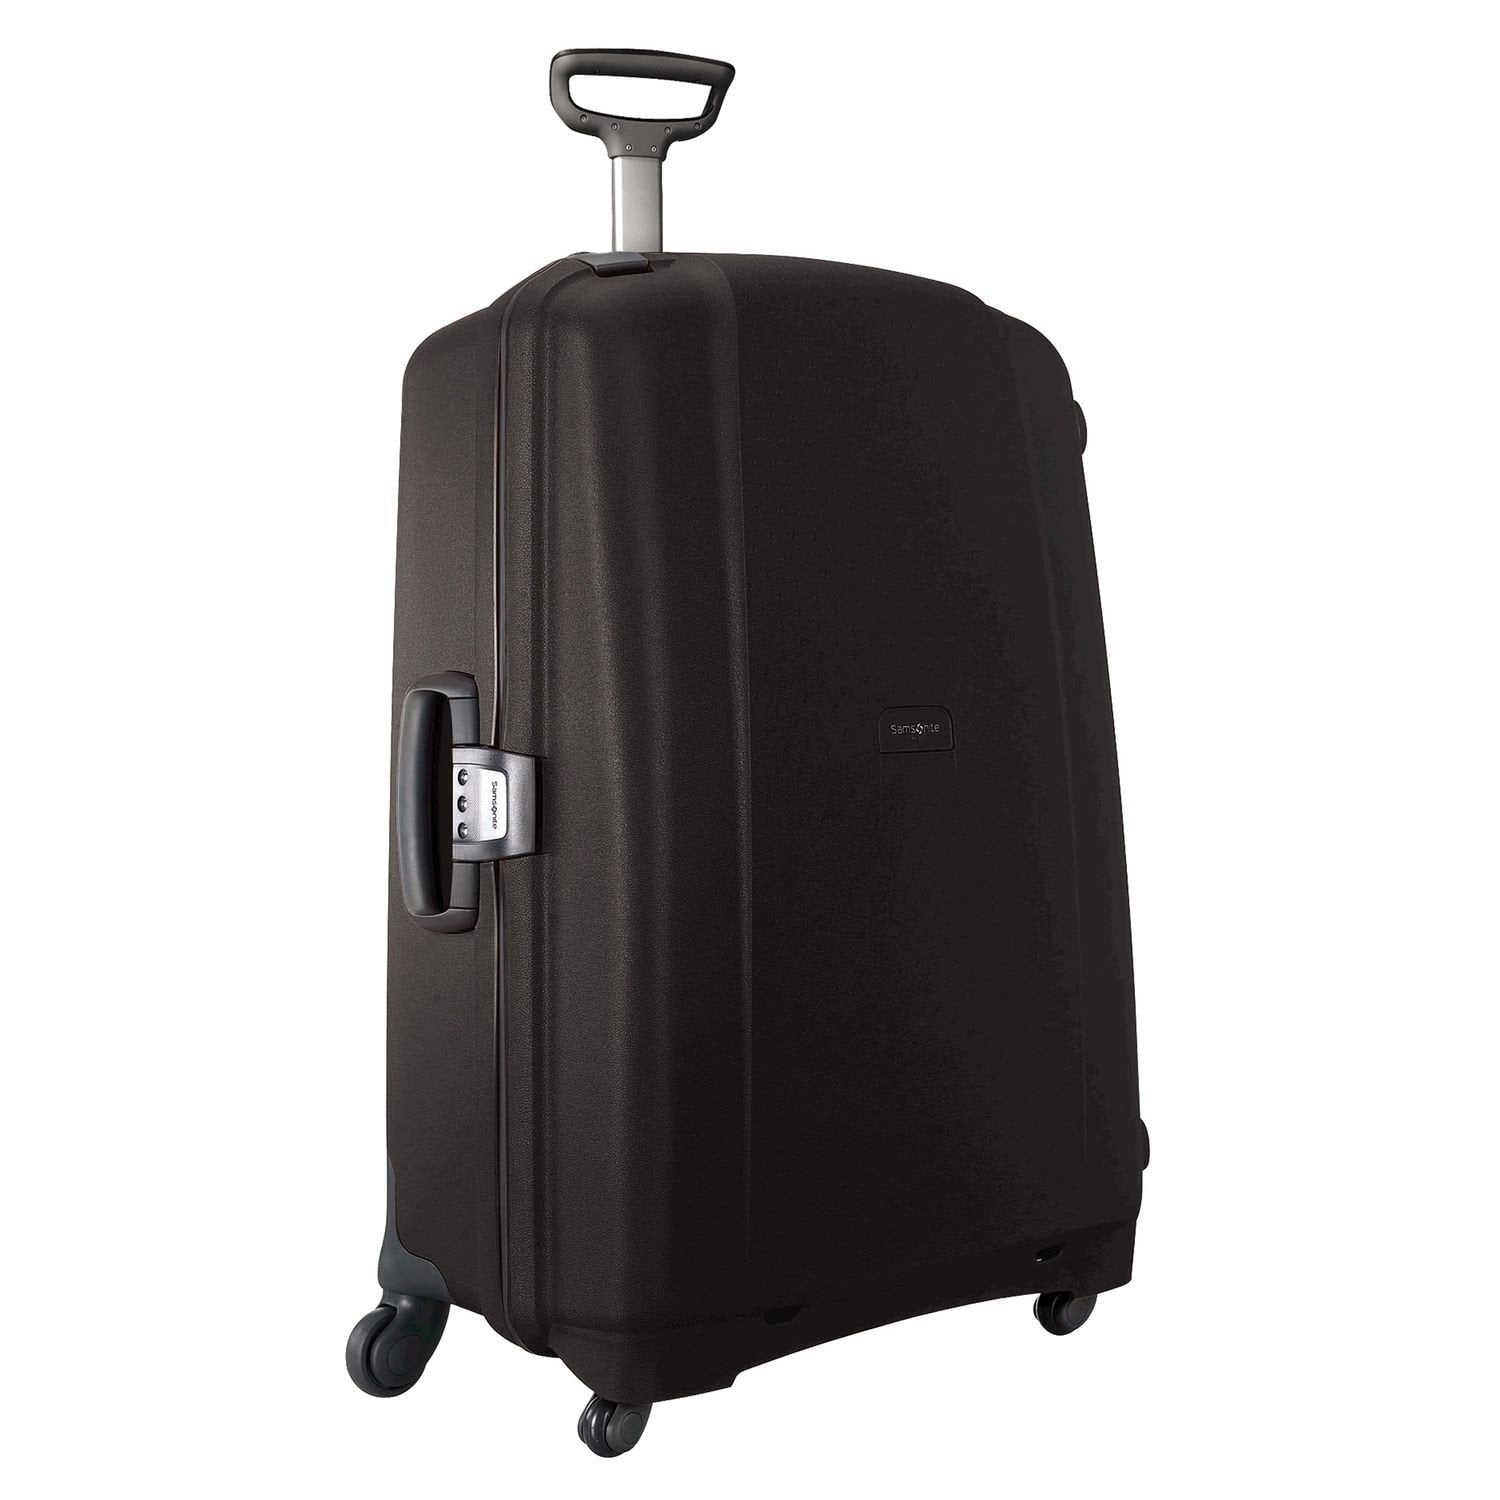 Spruce Travel Luggage Covers Suitcase Protector Bag Cover Fits 18-32 Inch Luggage Suitcase Baggage Cover